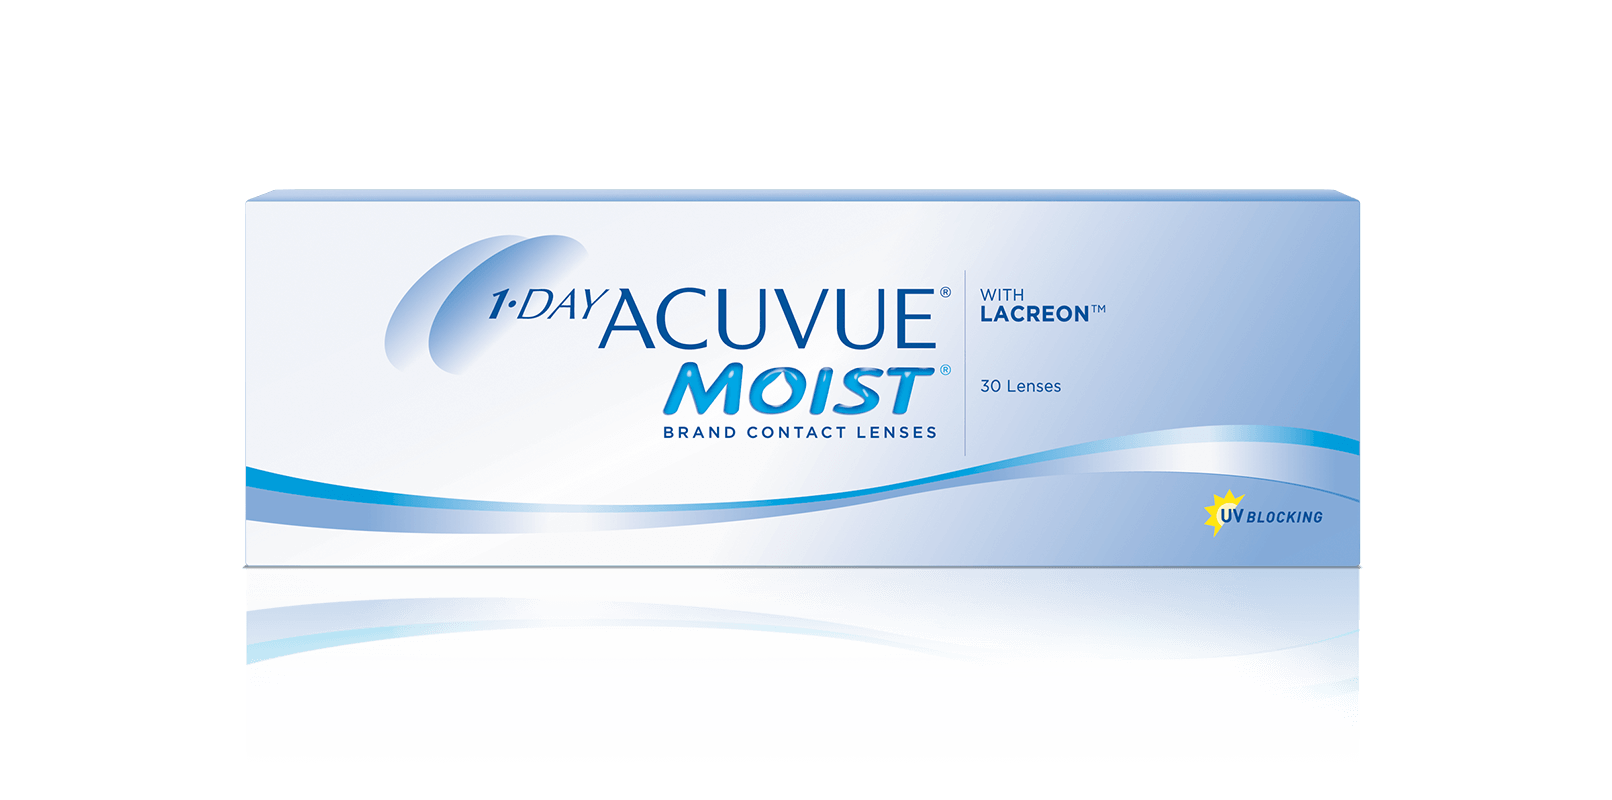 1-DAY ACUVUE® MOIST